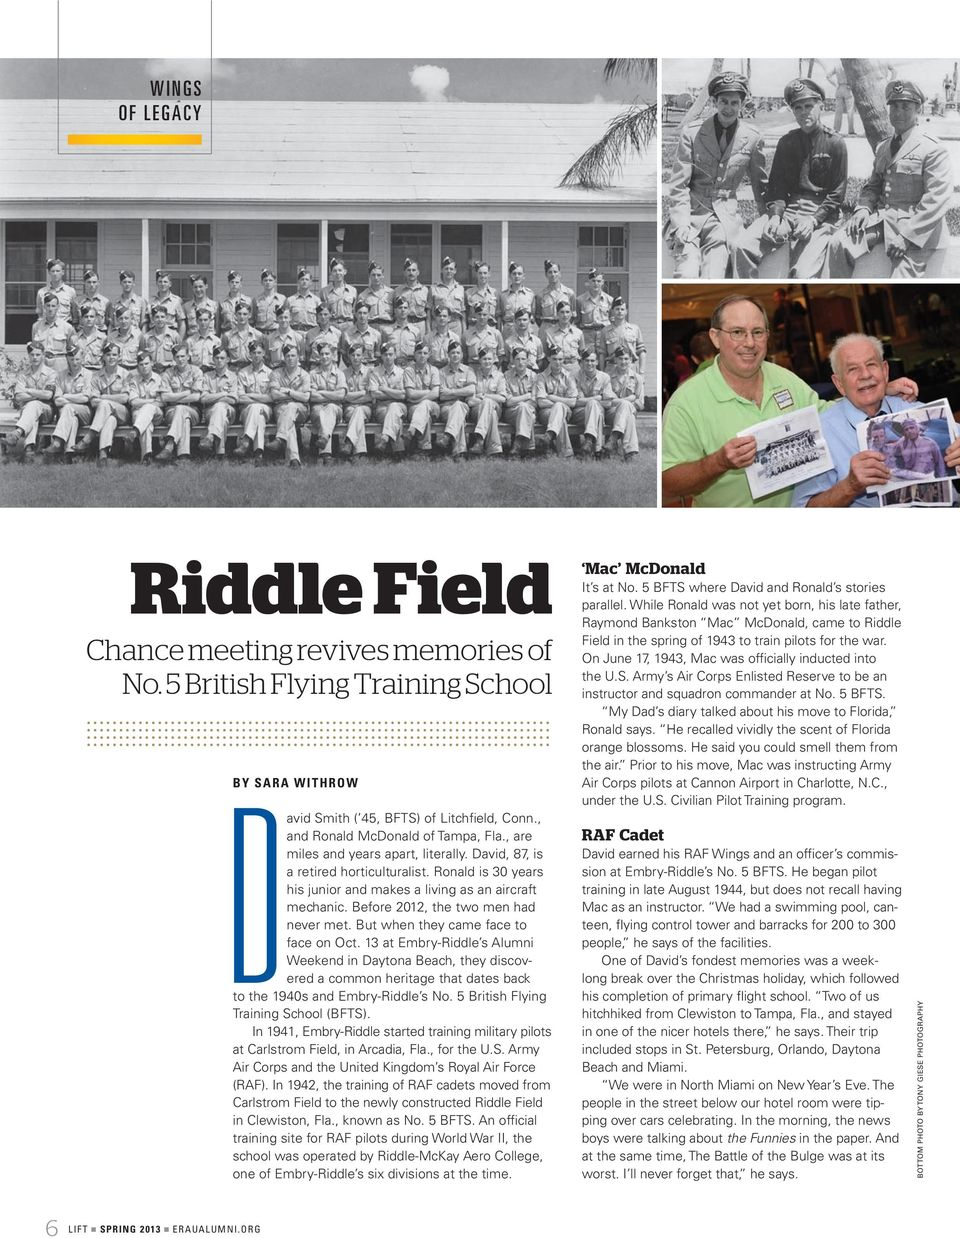 But when they came face to face on Oct. 13 at Embry-Riddle s Alumni Weekend in Daytona Beach, they discovered a common heritage that dates back to the 1940s and Embry-Riddle s No.